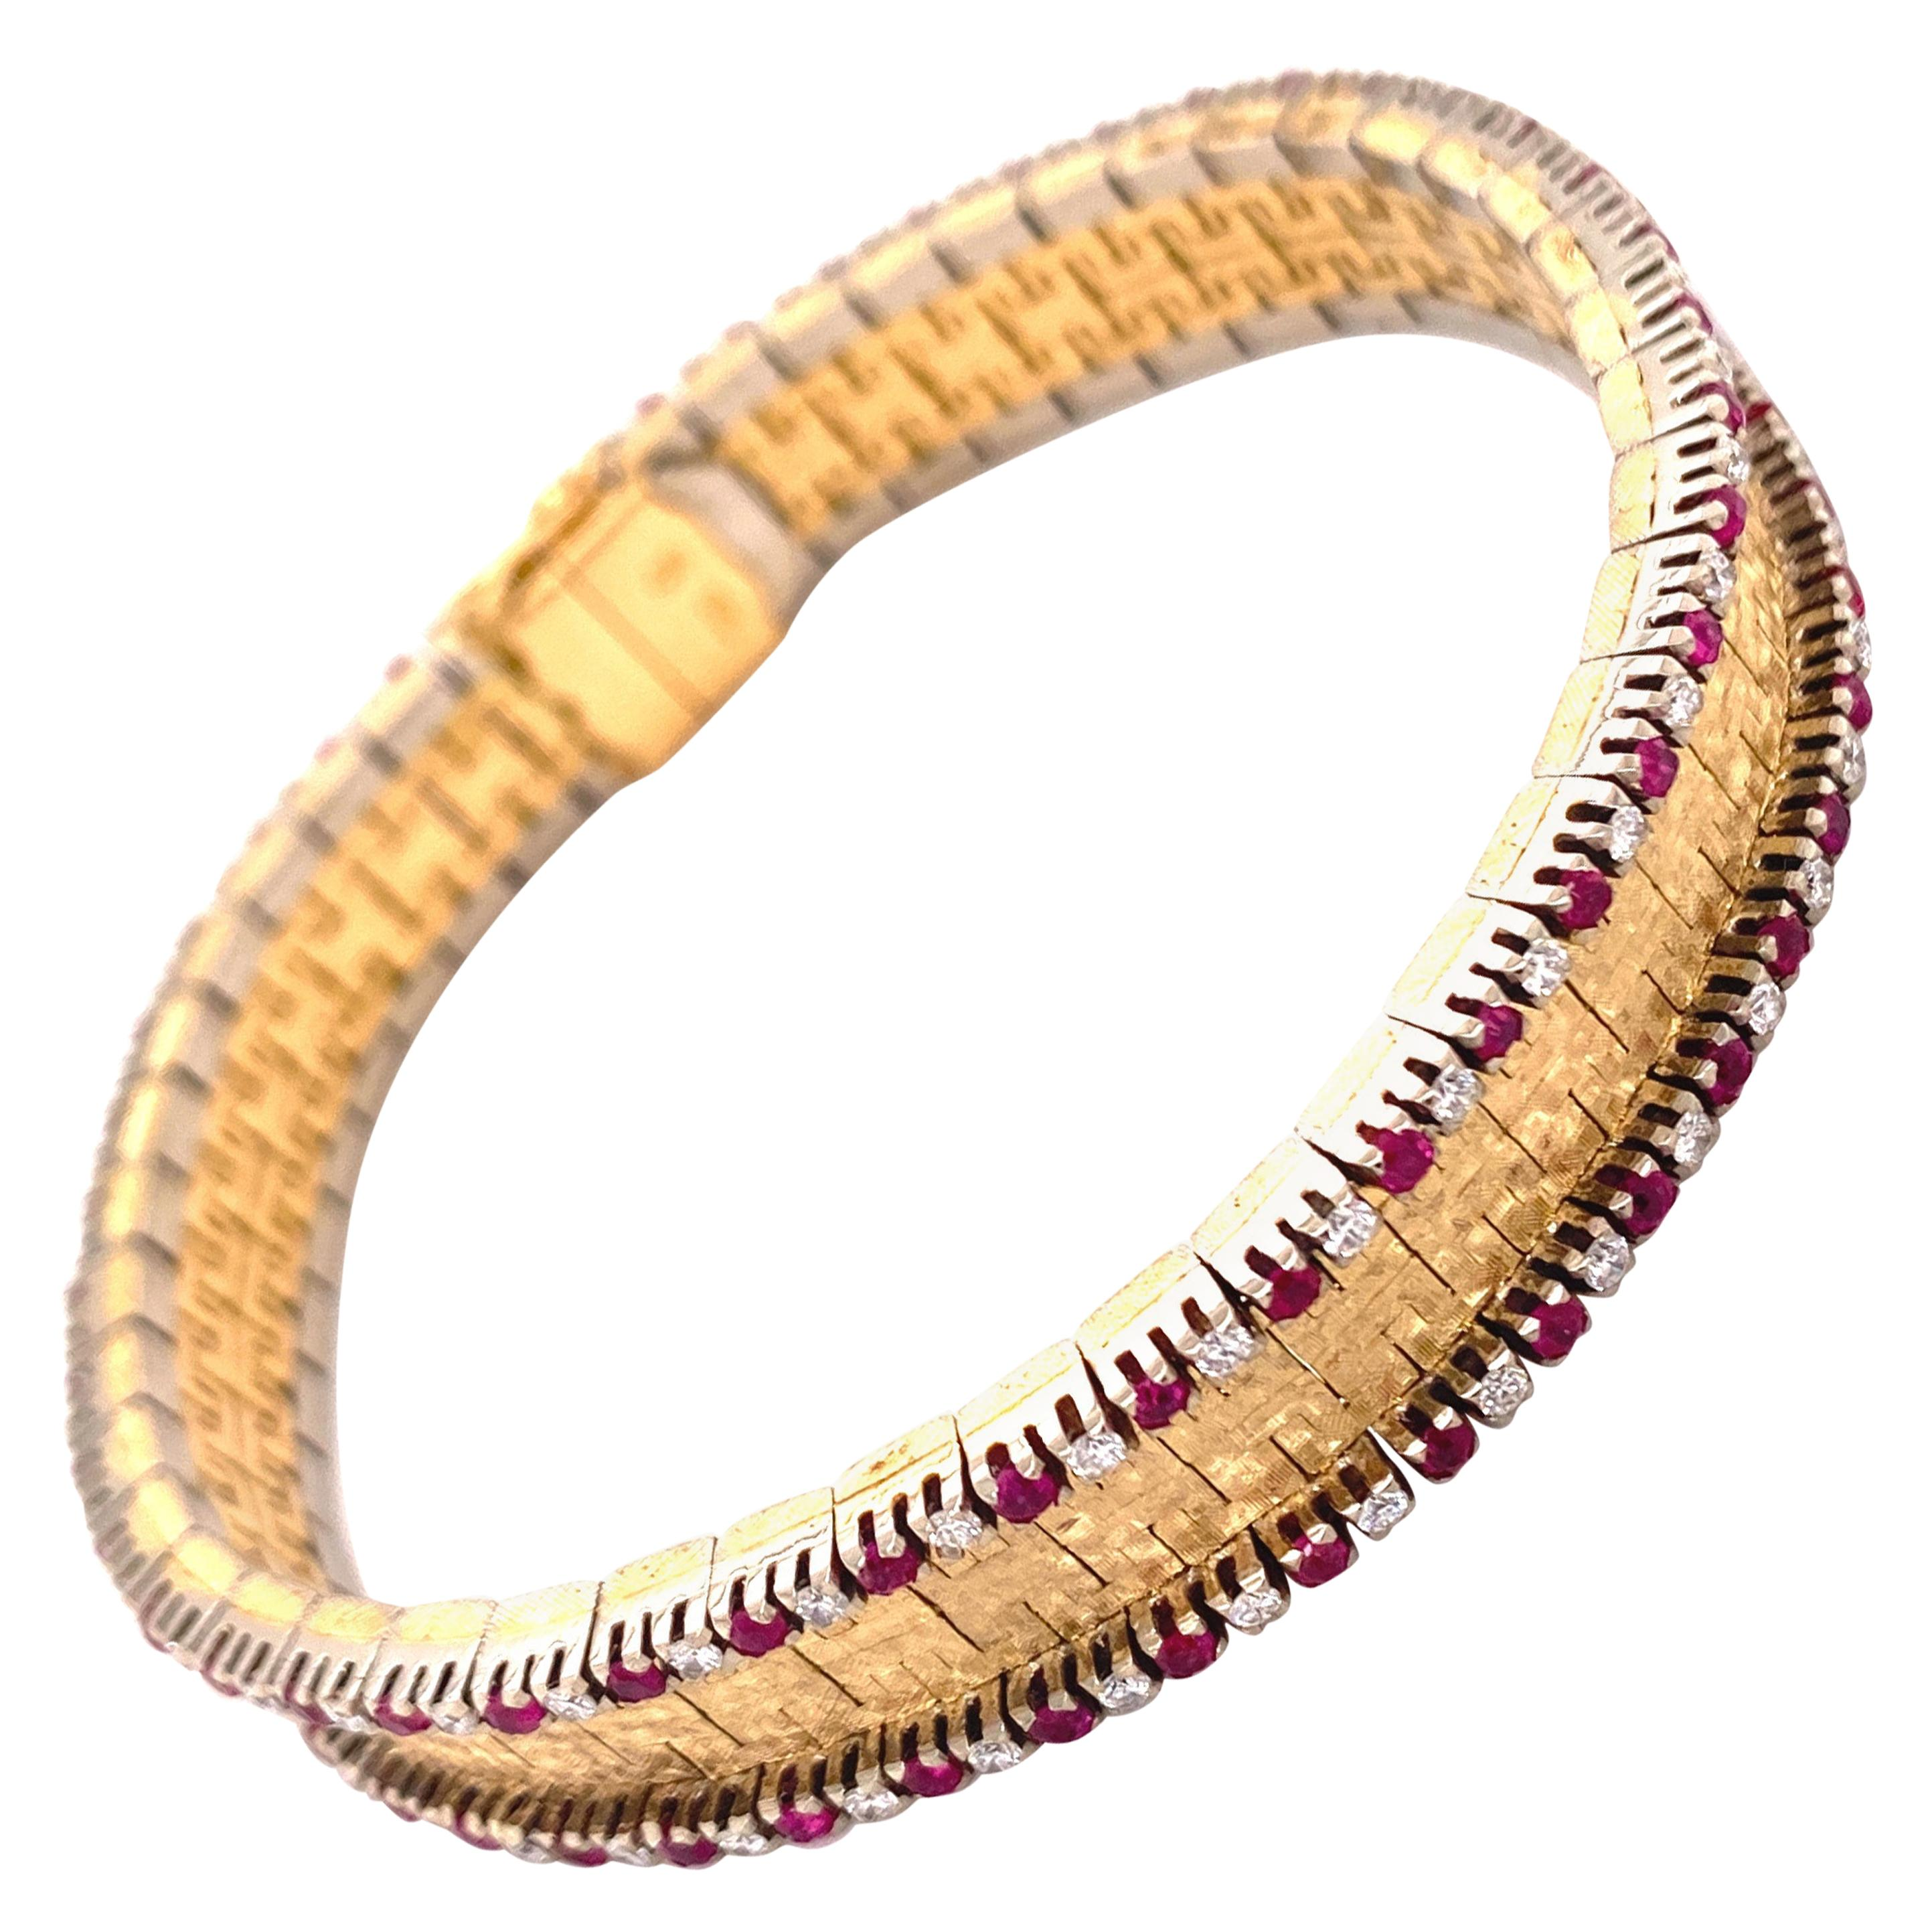 Elegant Diamond and Ruby Bracelet in 18 Karat Yellow and White Gold